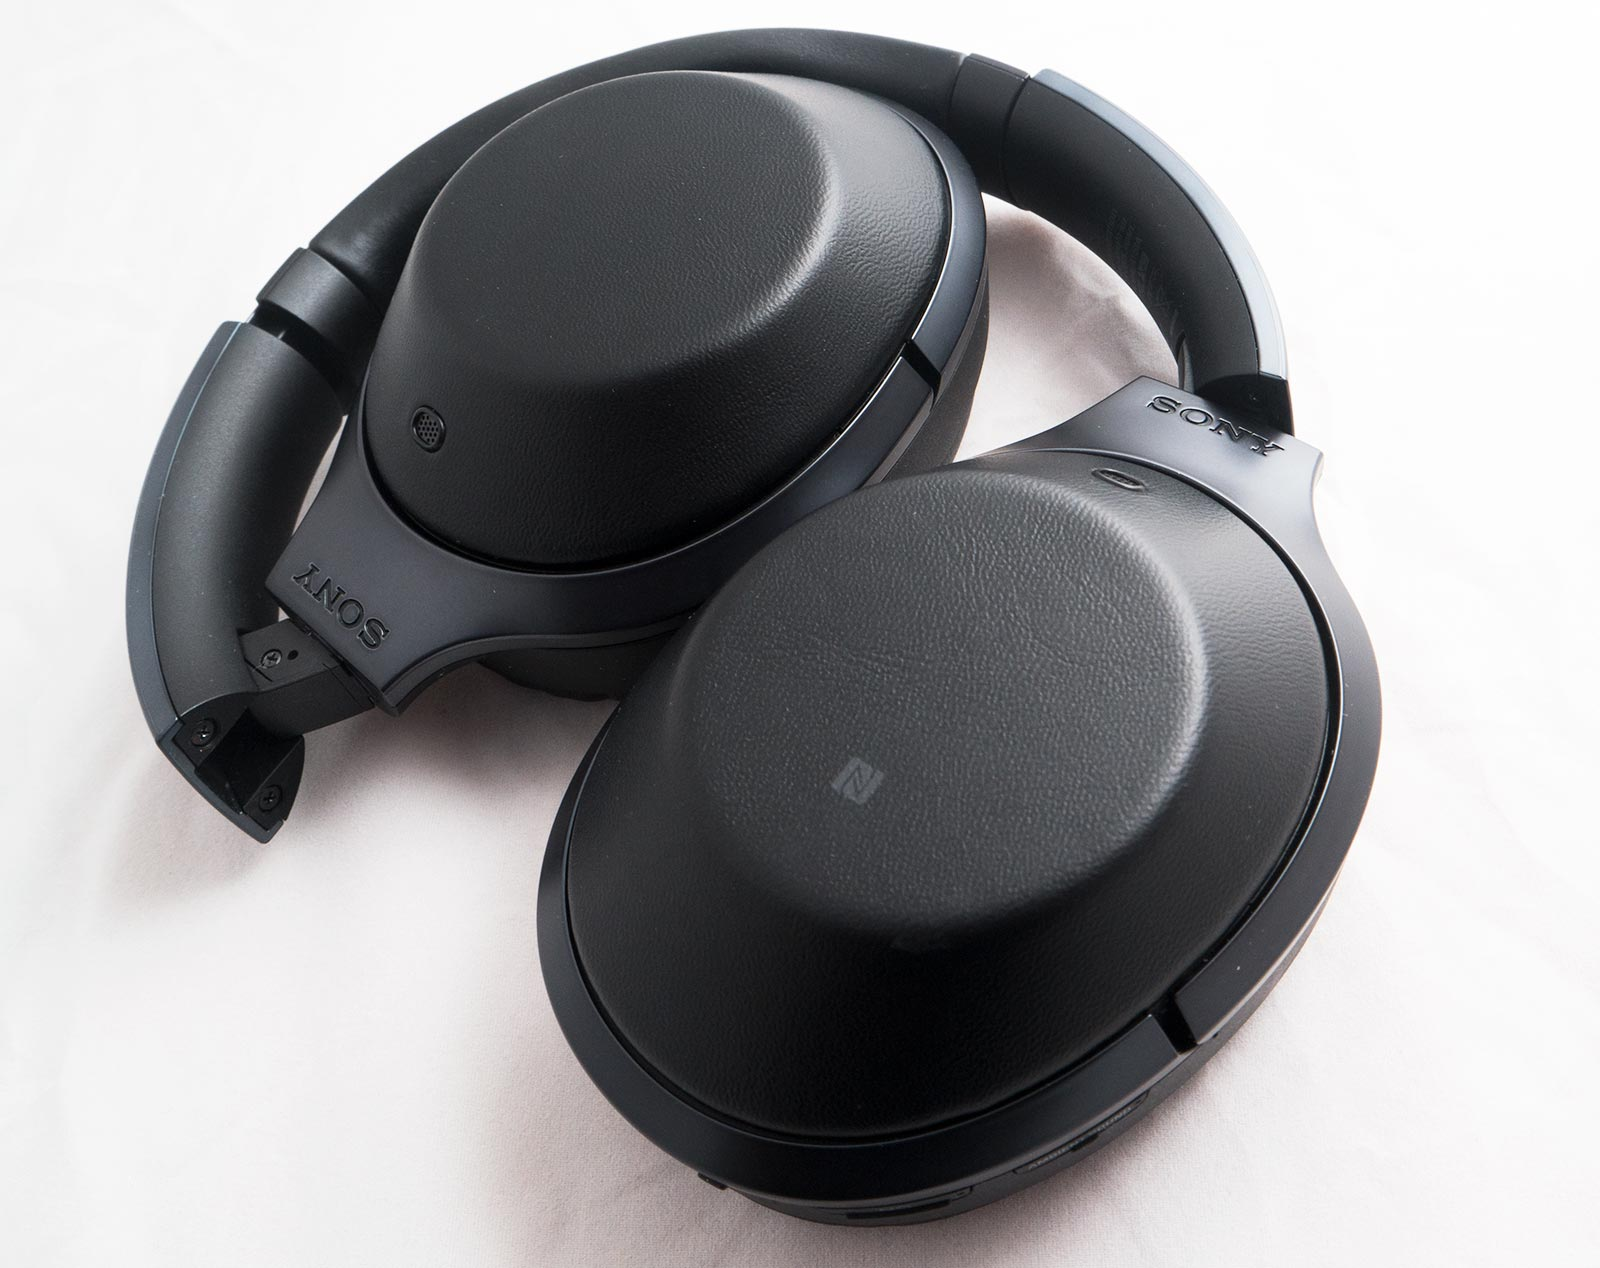 Review Sony Mdr 1000x Noise Cancellation Headphones Headphone Final Thoughts Tldr